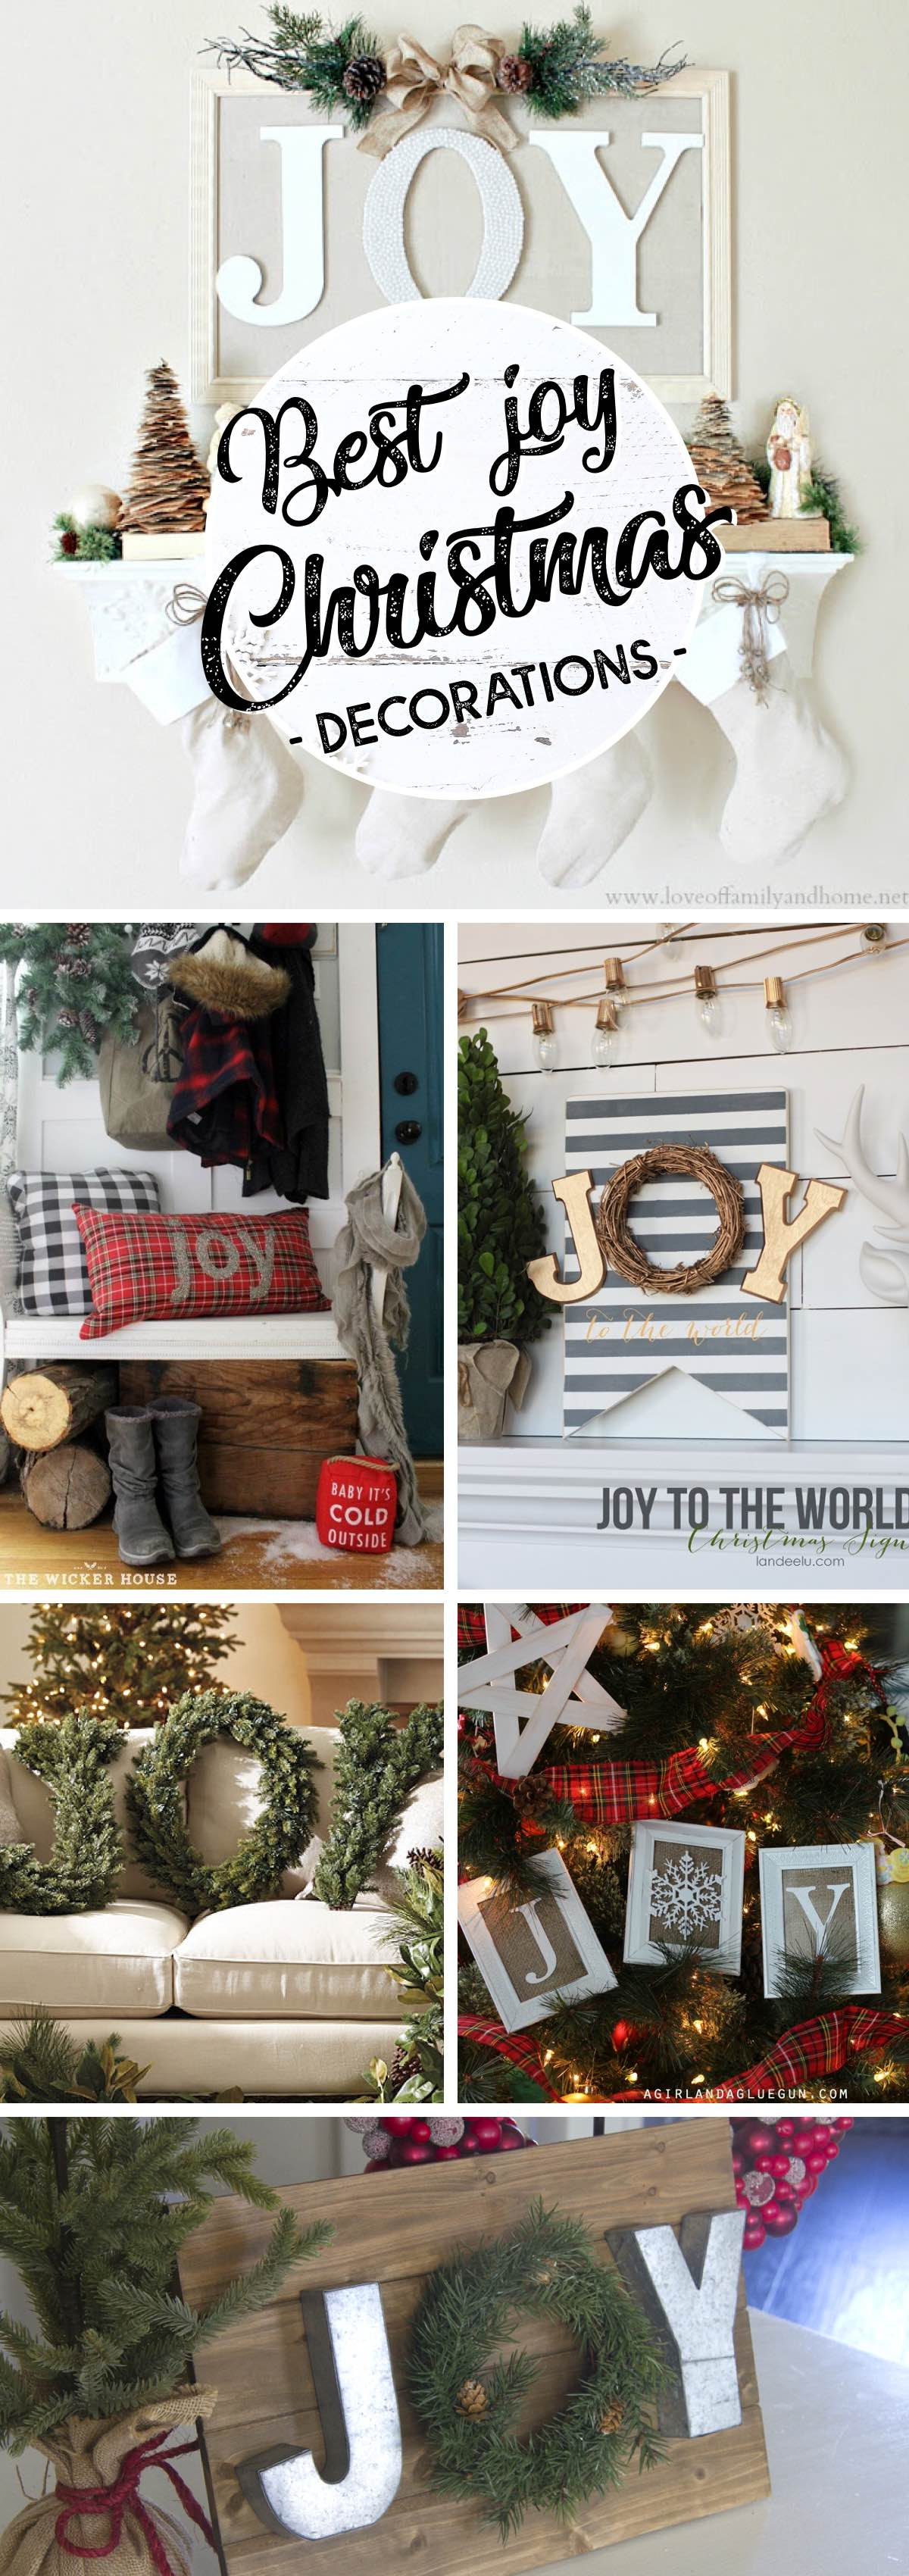 20 JOY Christmas Decorations As Cheerful as the Word They ...